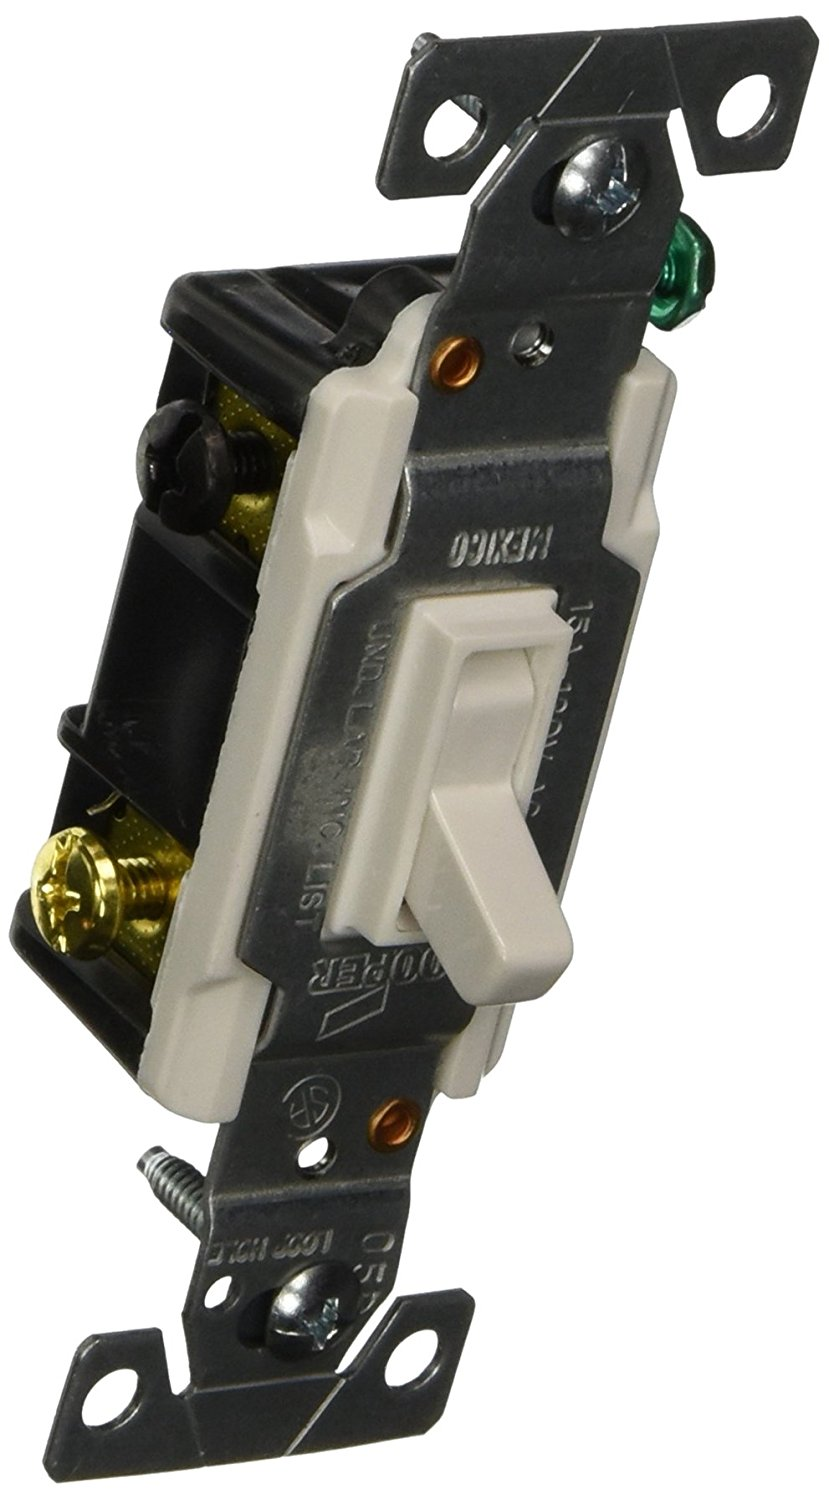 Cheap Eaton Safety Switch Find Deals On Line At 15 Amp Single Pole 2 Toggle Switches With Back And Side Wiring White Get Quotations 1303 7ltwbox 120 Volt Standard Grade 3 Way Lighted